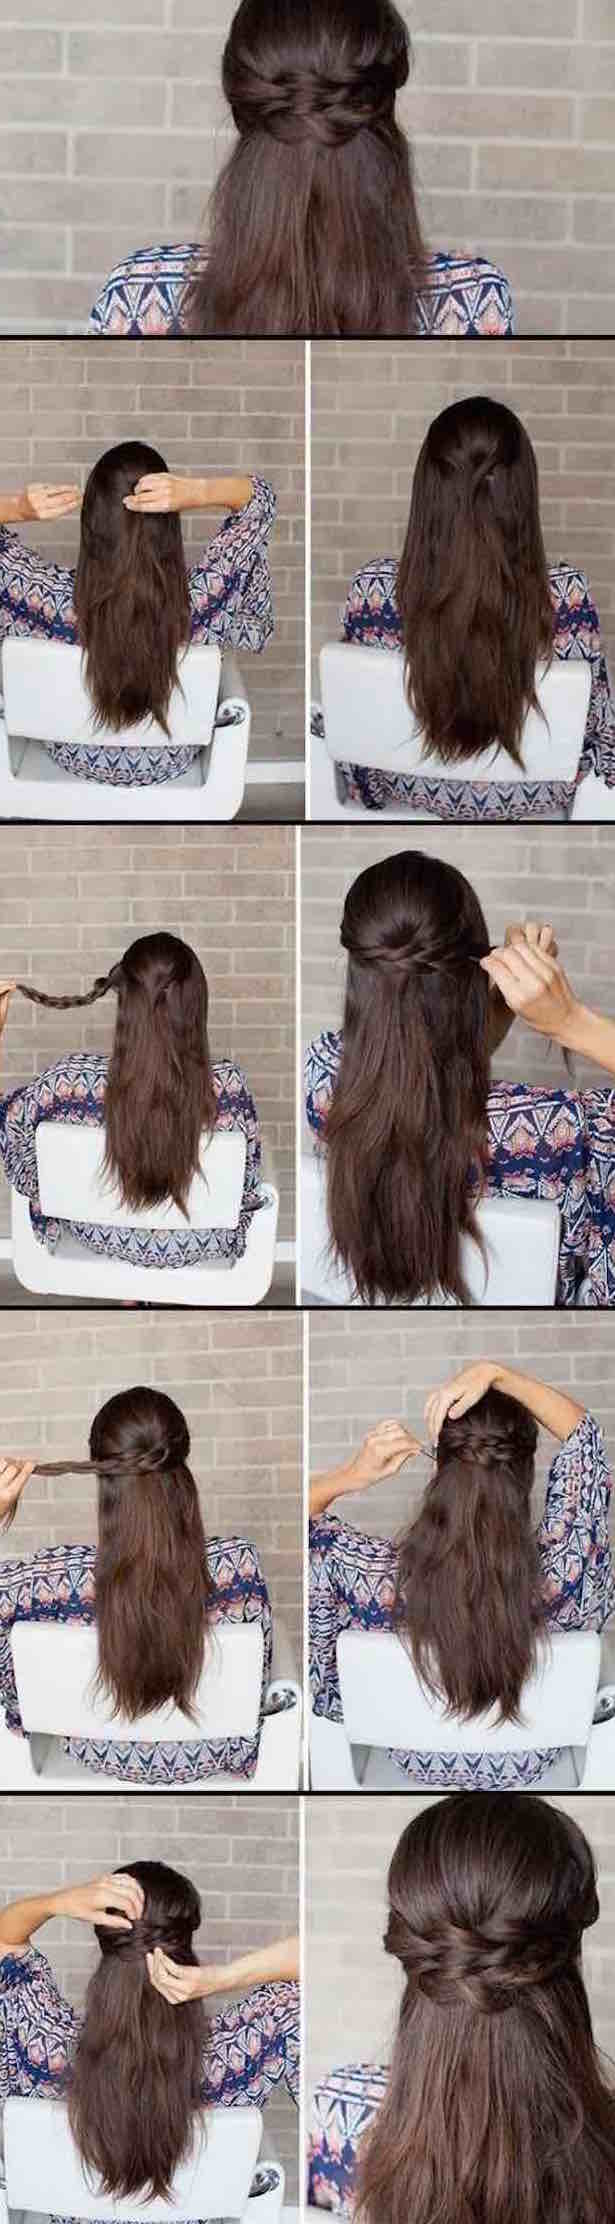 2018 Easy Half-Up Half-Down Hairstyle Tutorials 2